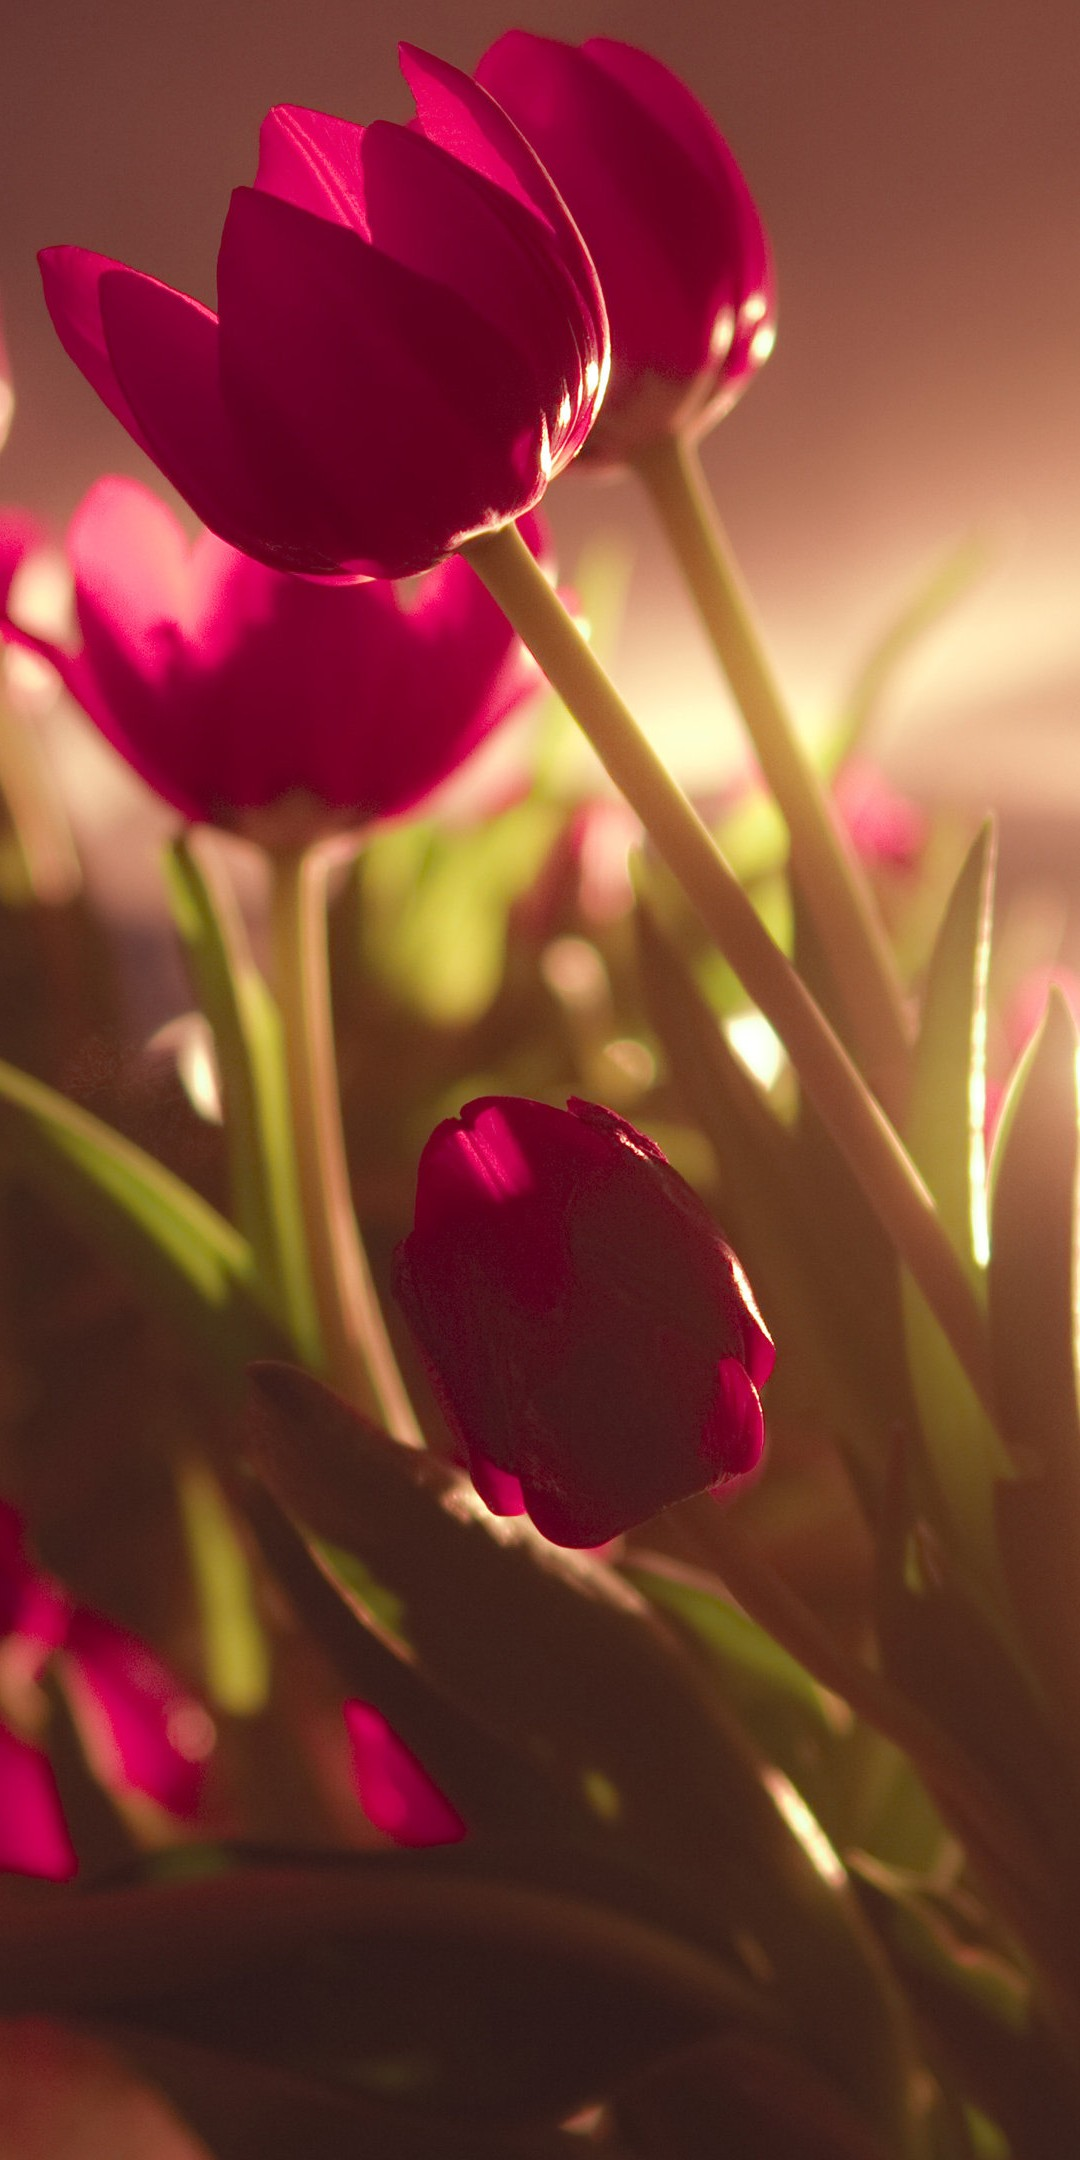 Tulip Ultra Hd Wallpaper 1080x2160 on samsung galaxy wallpaper